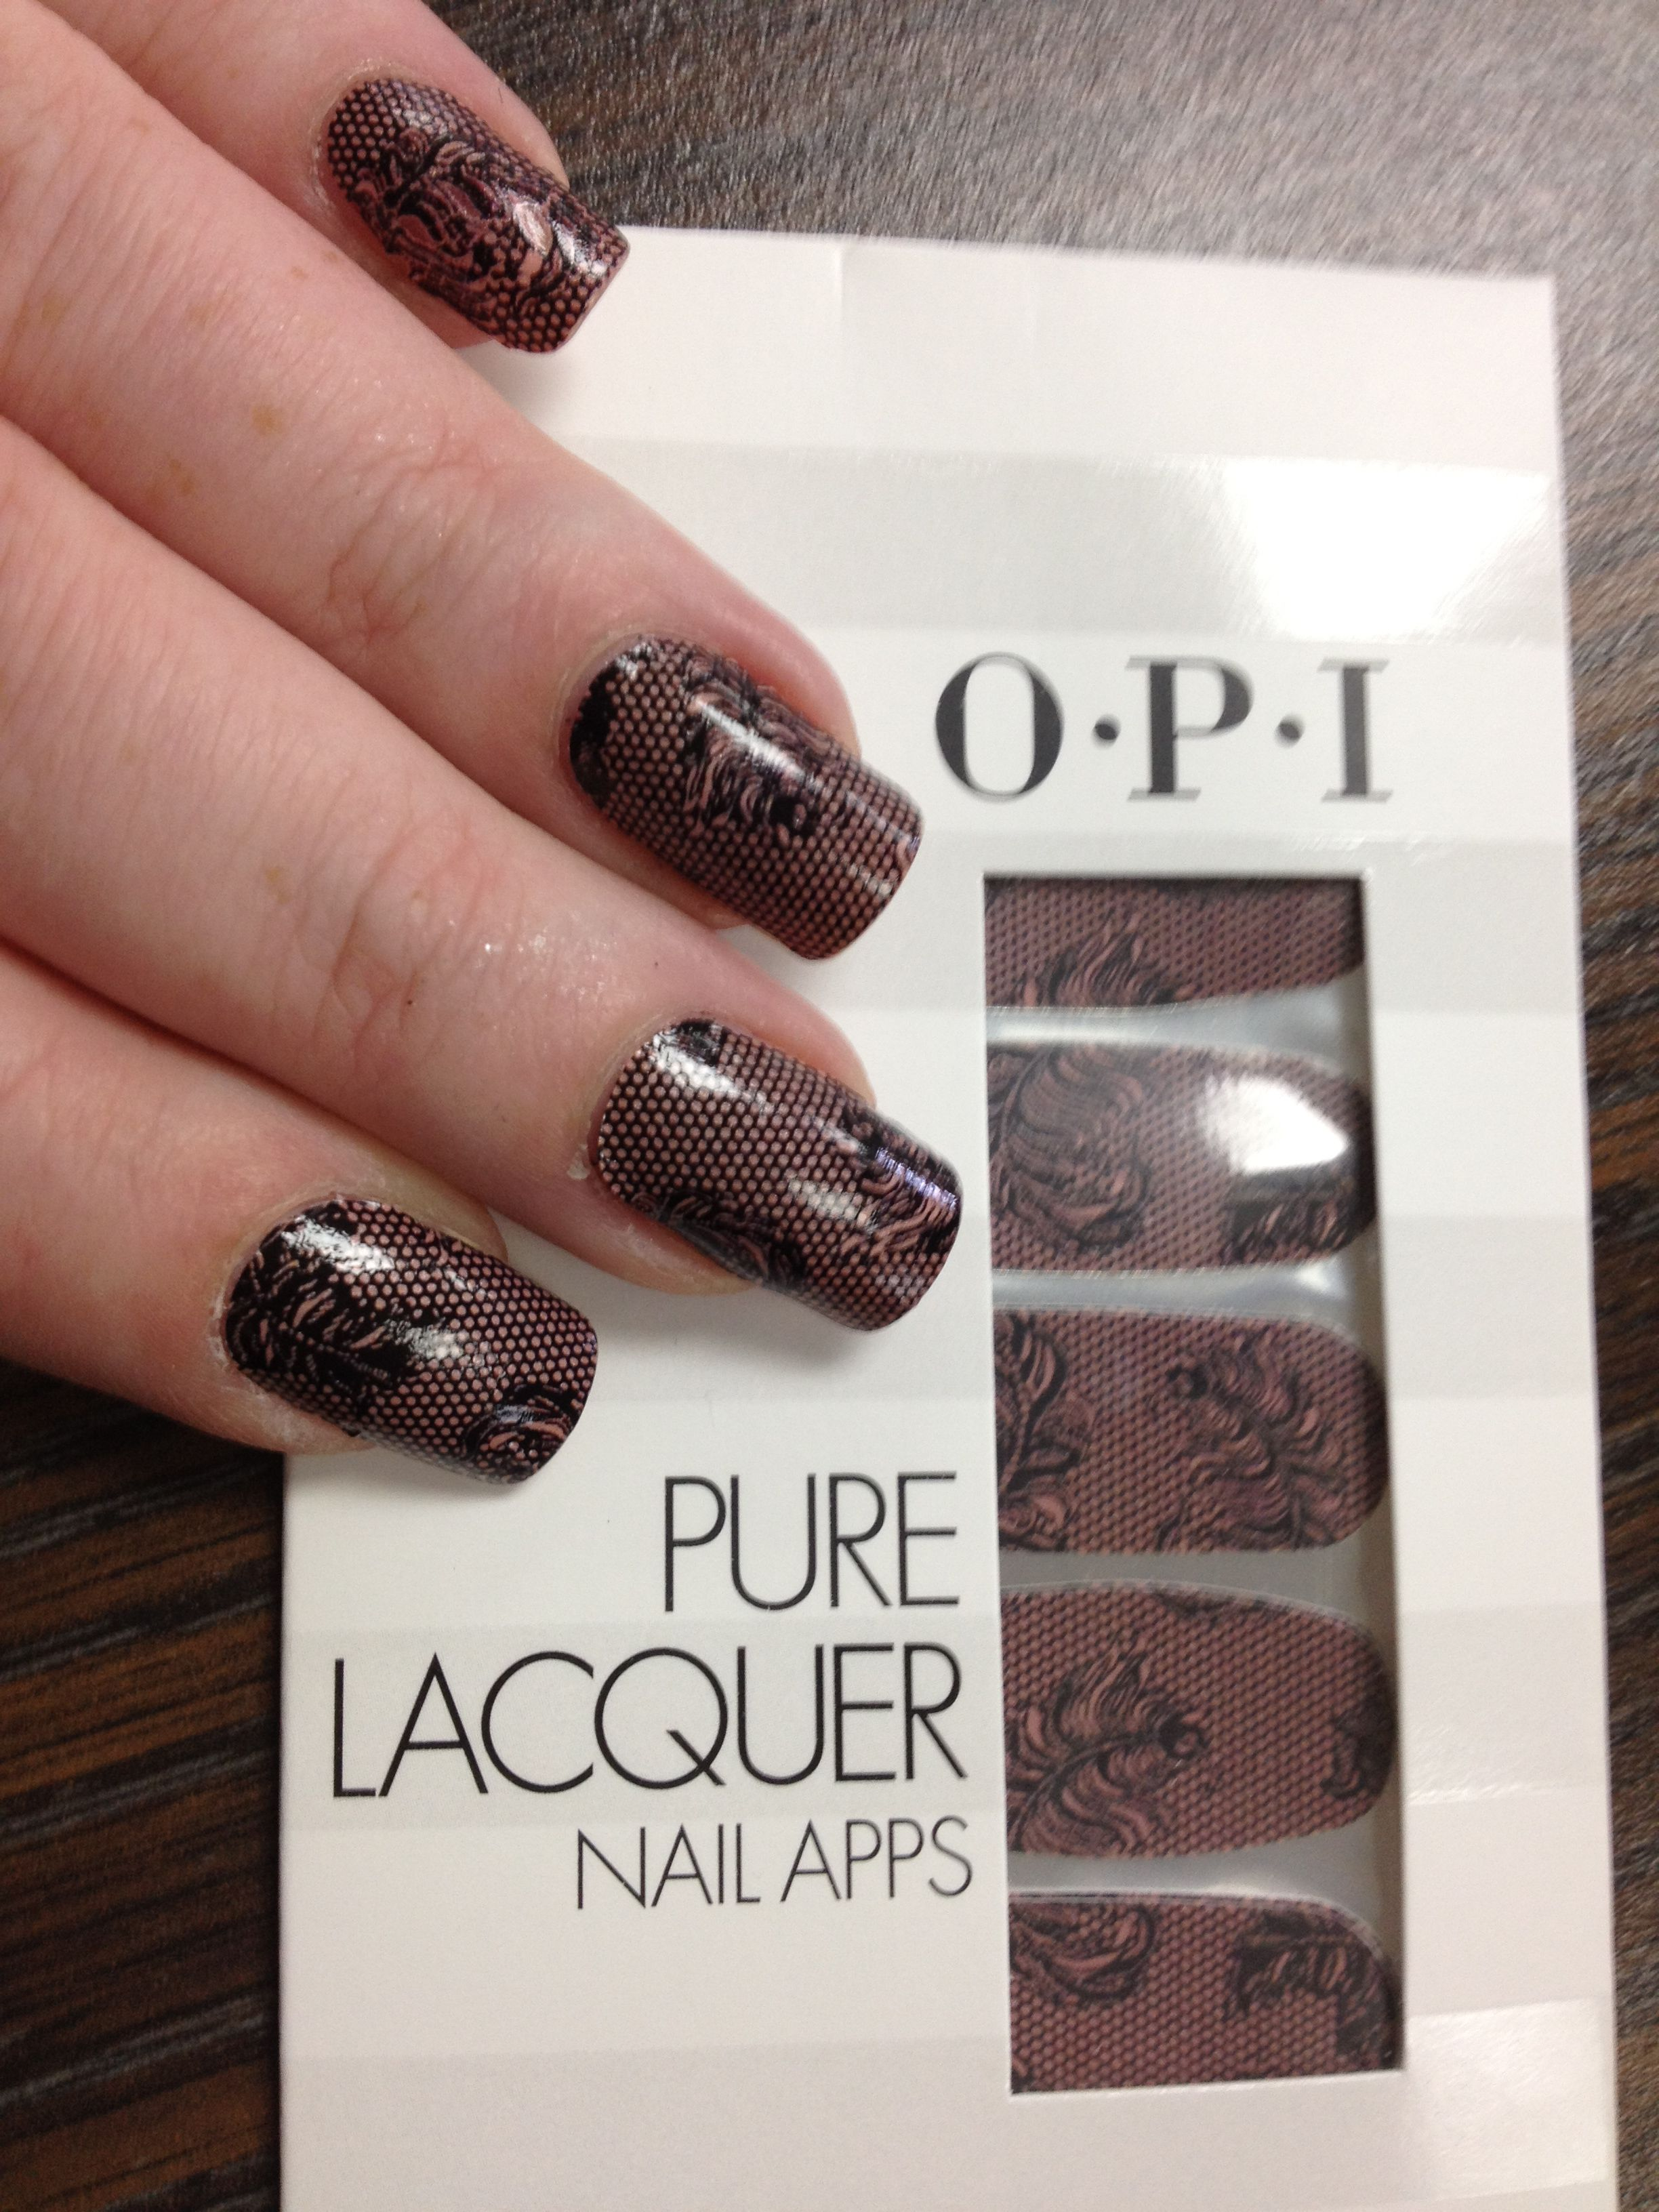 OPI Nail Apps @ Modern Edge School of Cosmetology